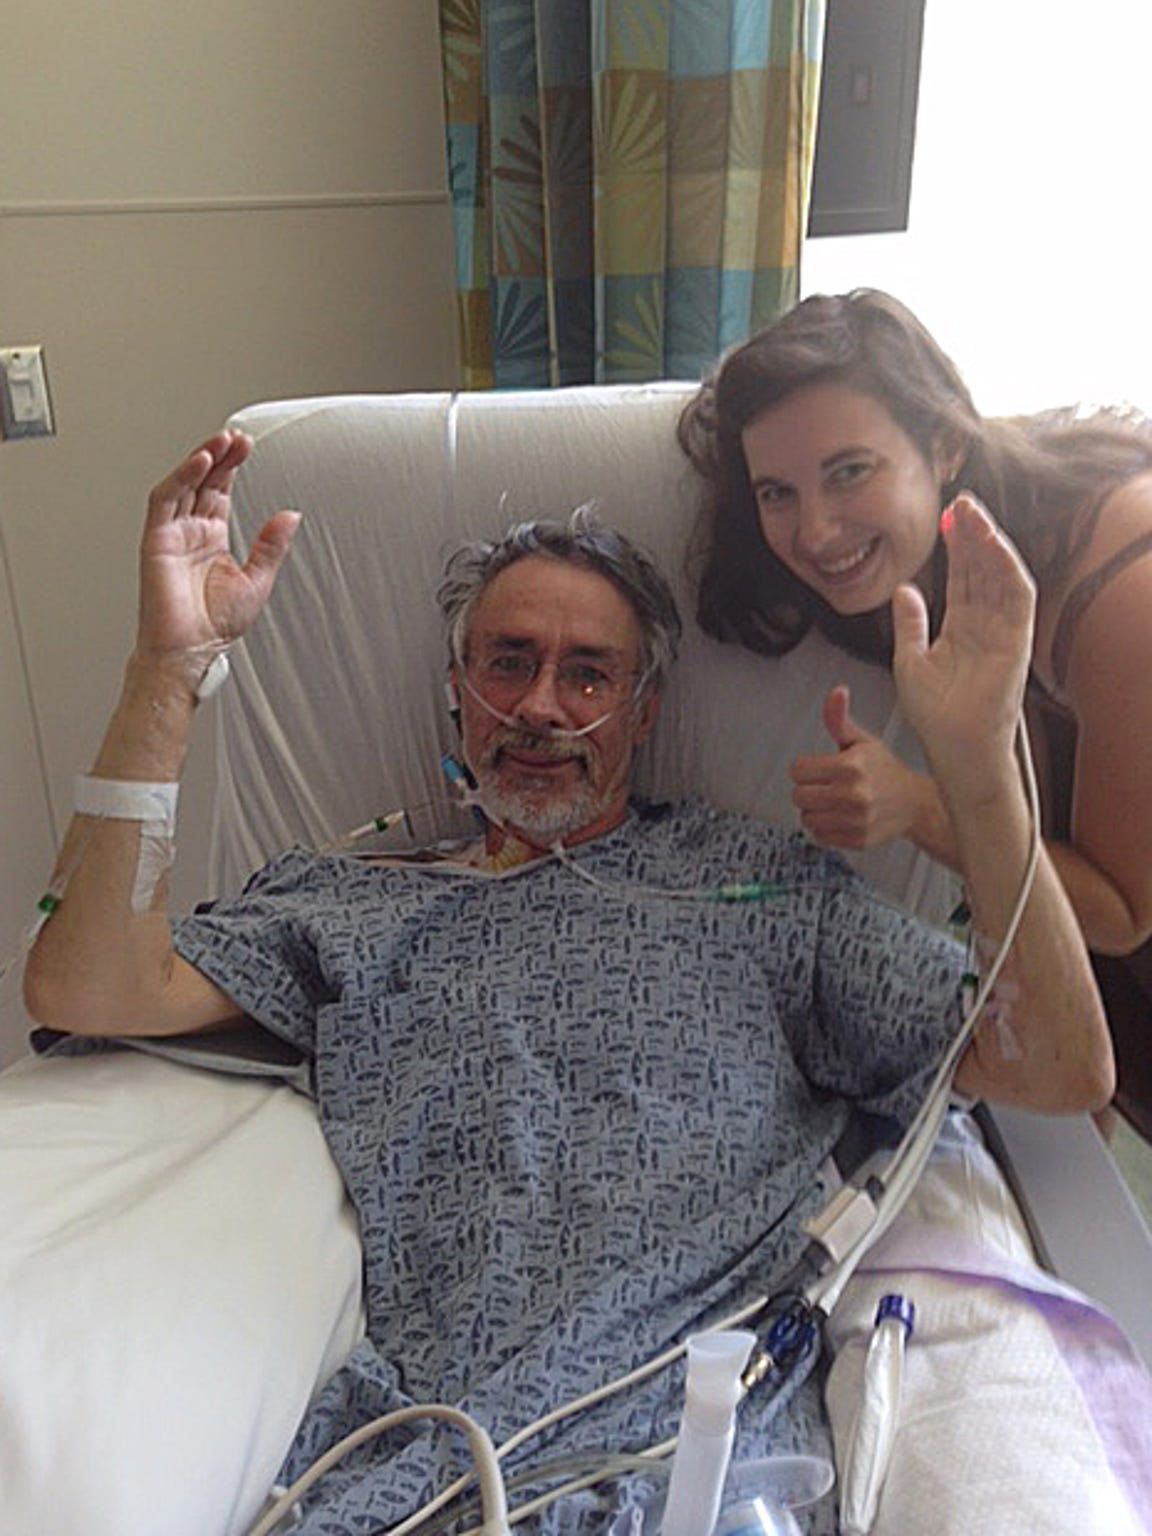 Rudy Caduff and his daughter Anna just before surgery. His daughter quit her job in a veterinarian's office in Ann Arbor, Mich., and moved to Durham, N.C., to be a caretaker for her father after his surgery.